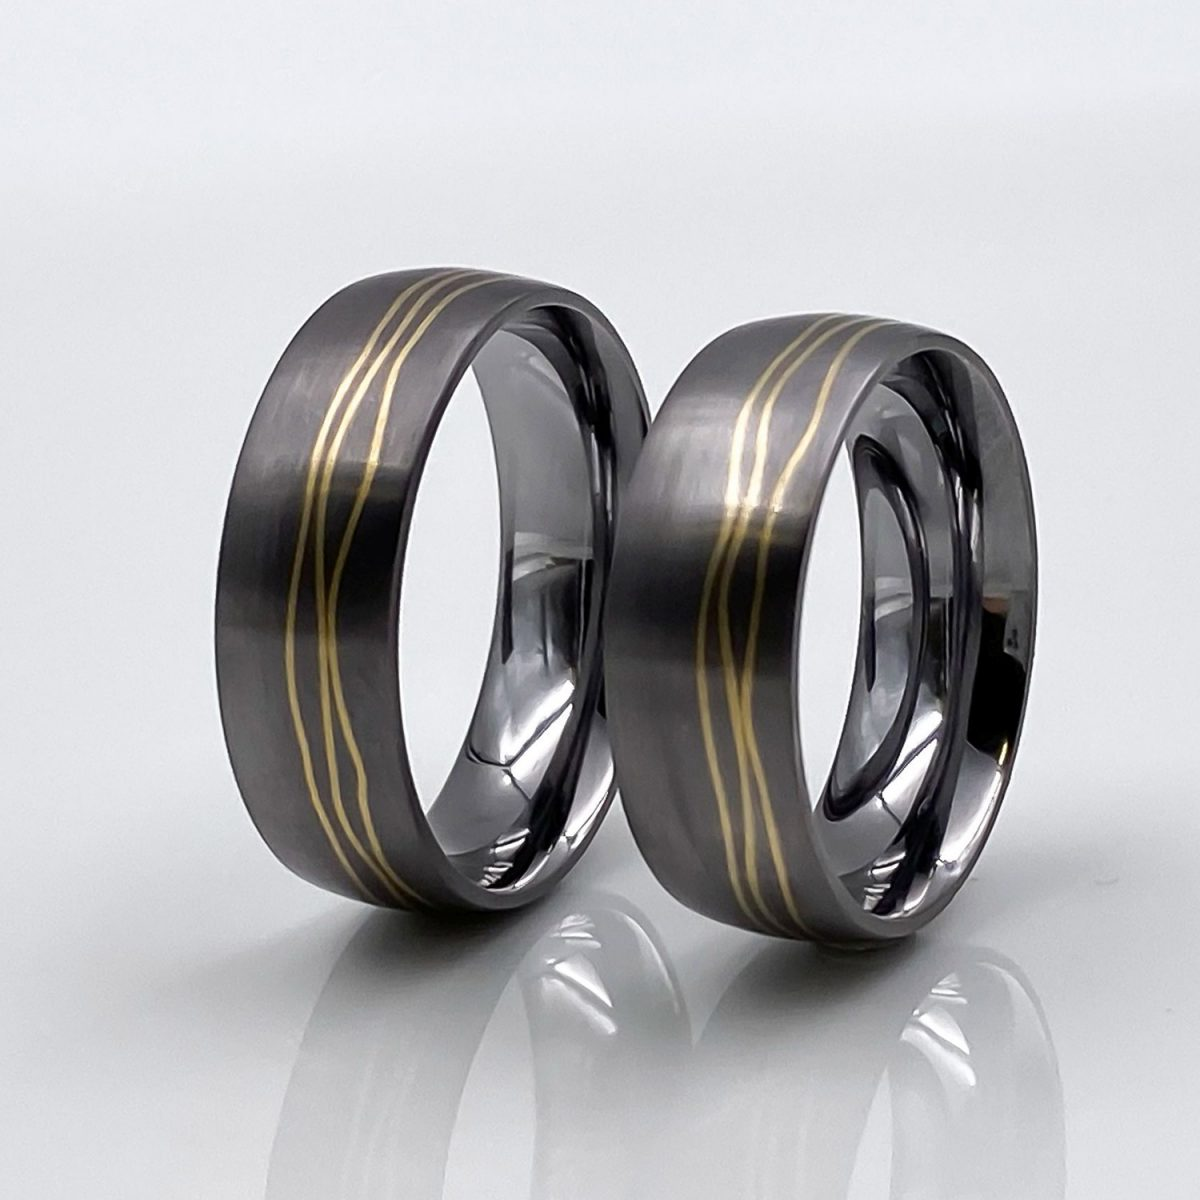 Tantal Hochzeitsring | Ringpaar True Love Collection No:44